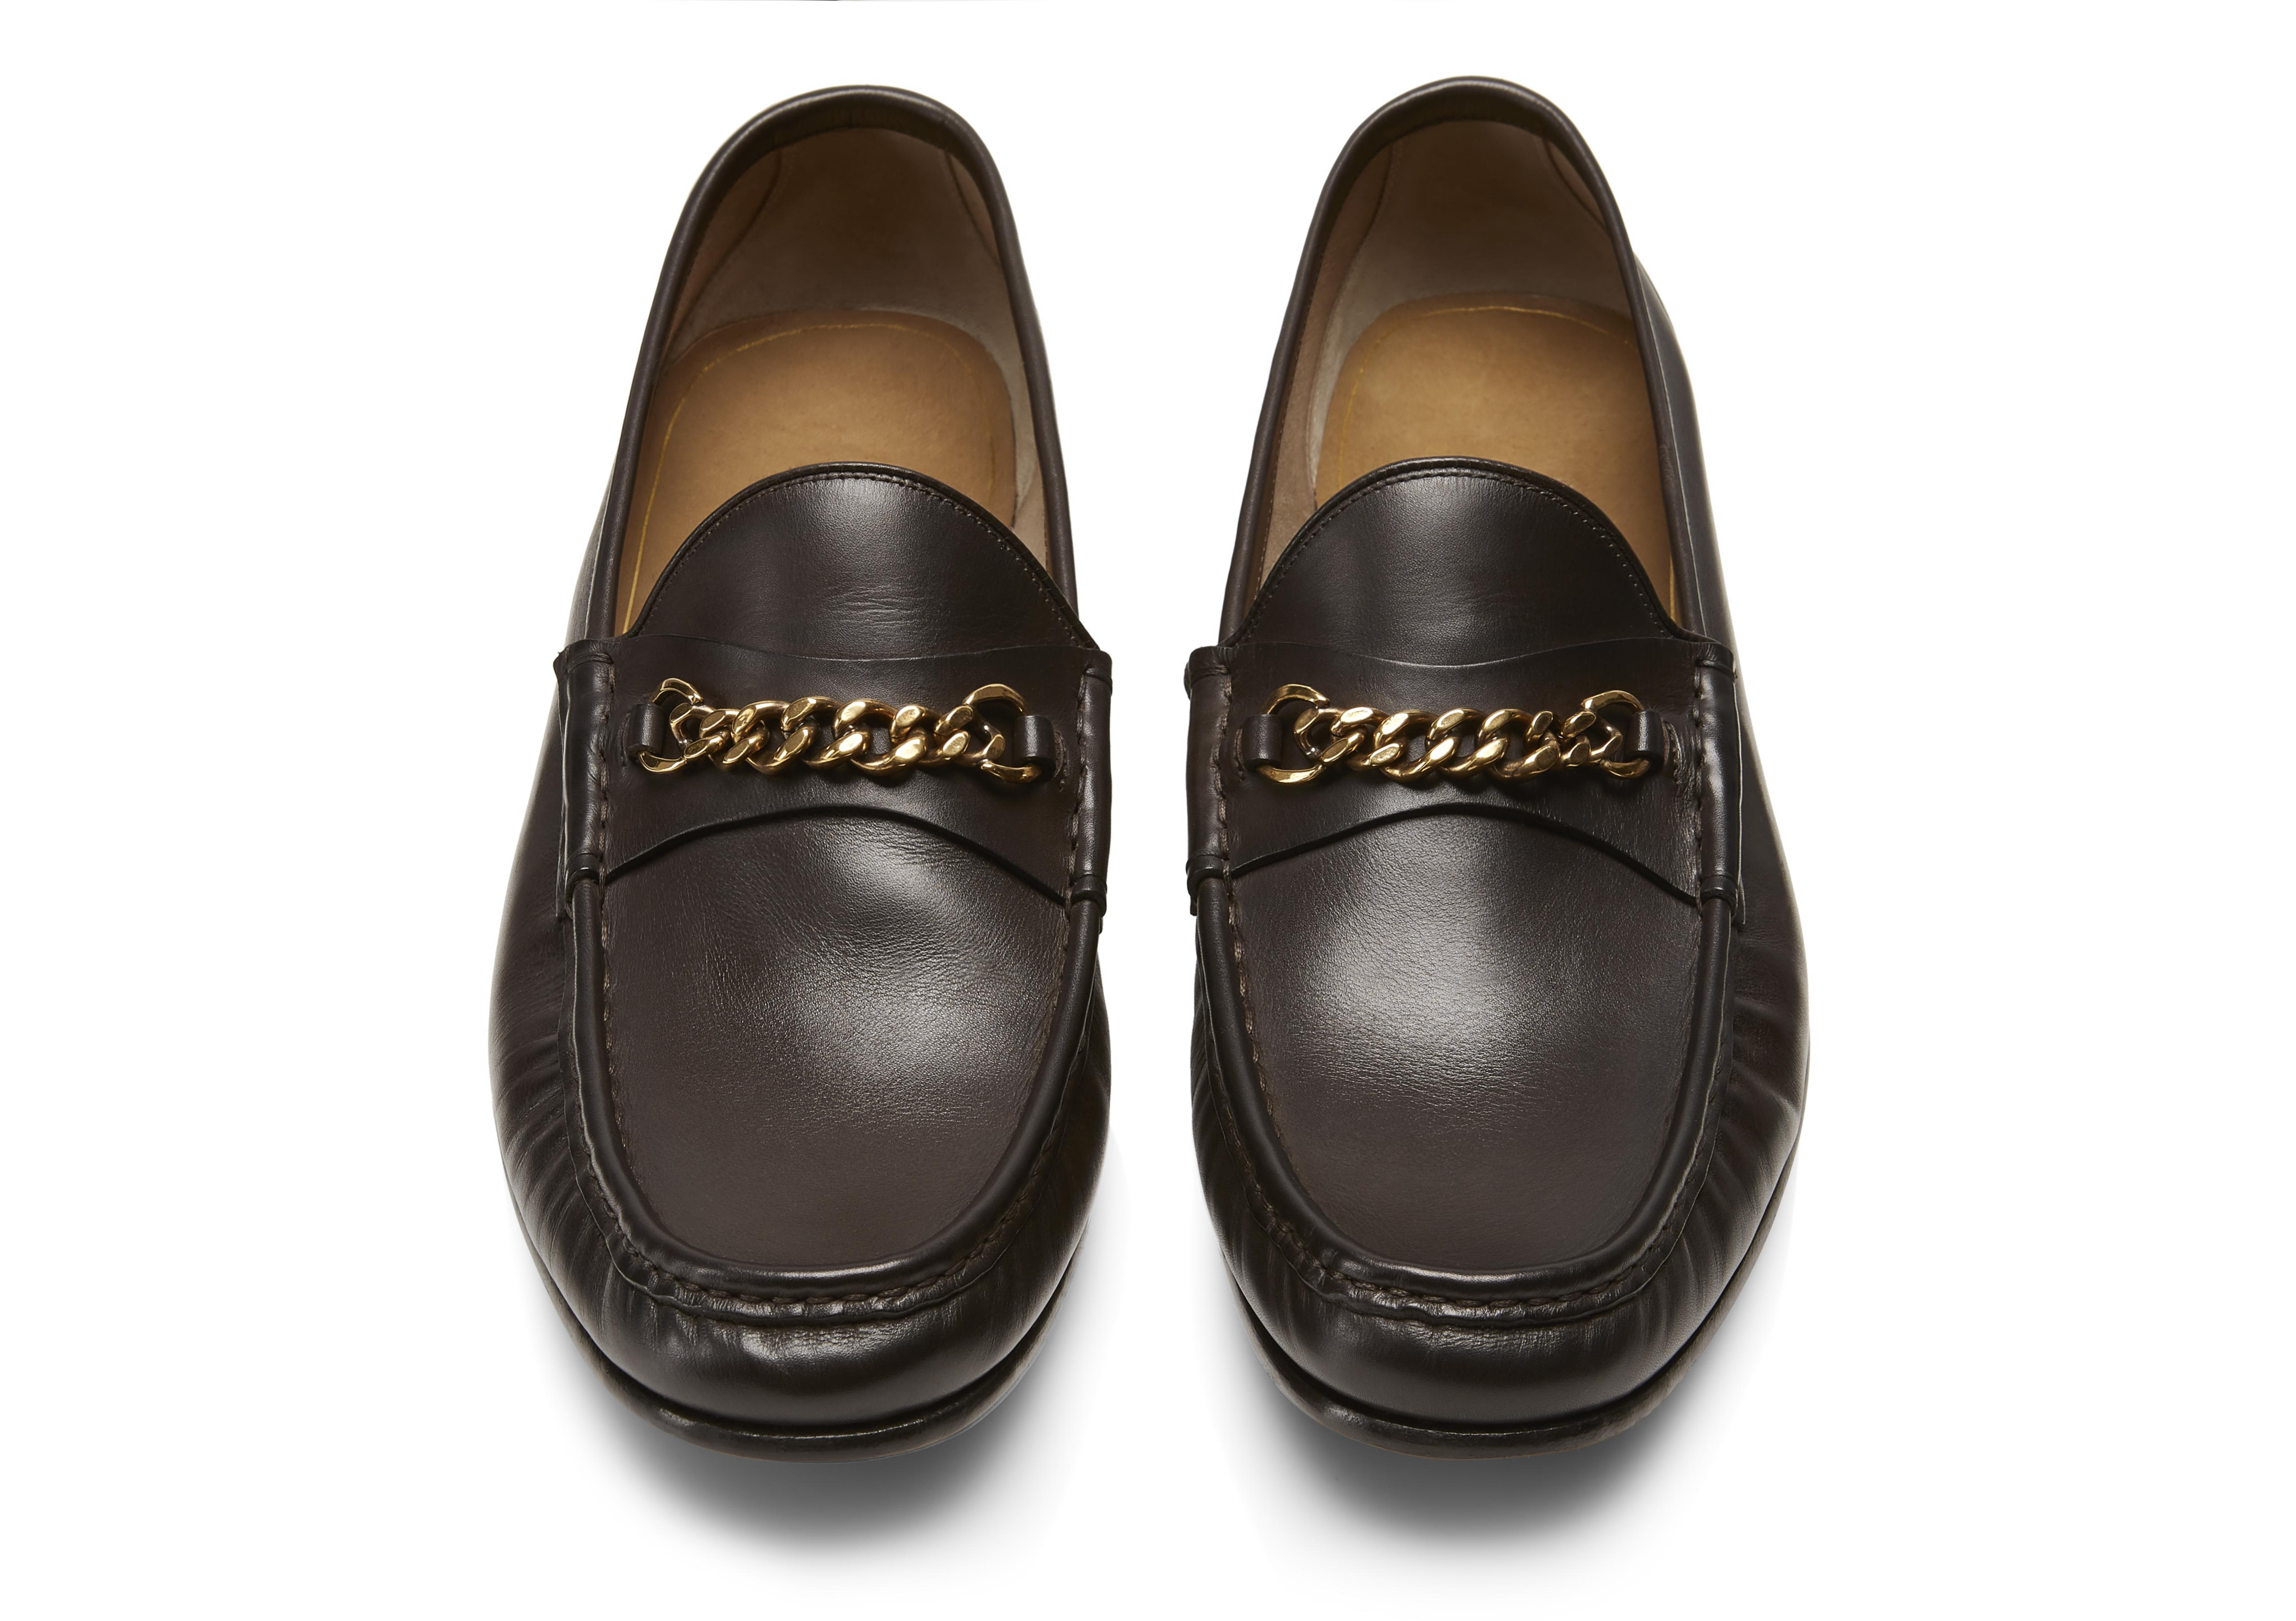 LEATHER YORK CHAIN LOAFERS C thumbnail